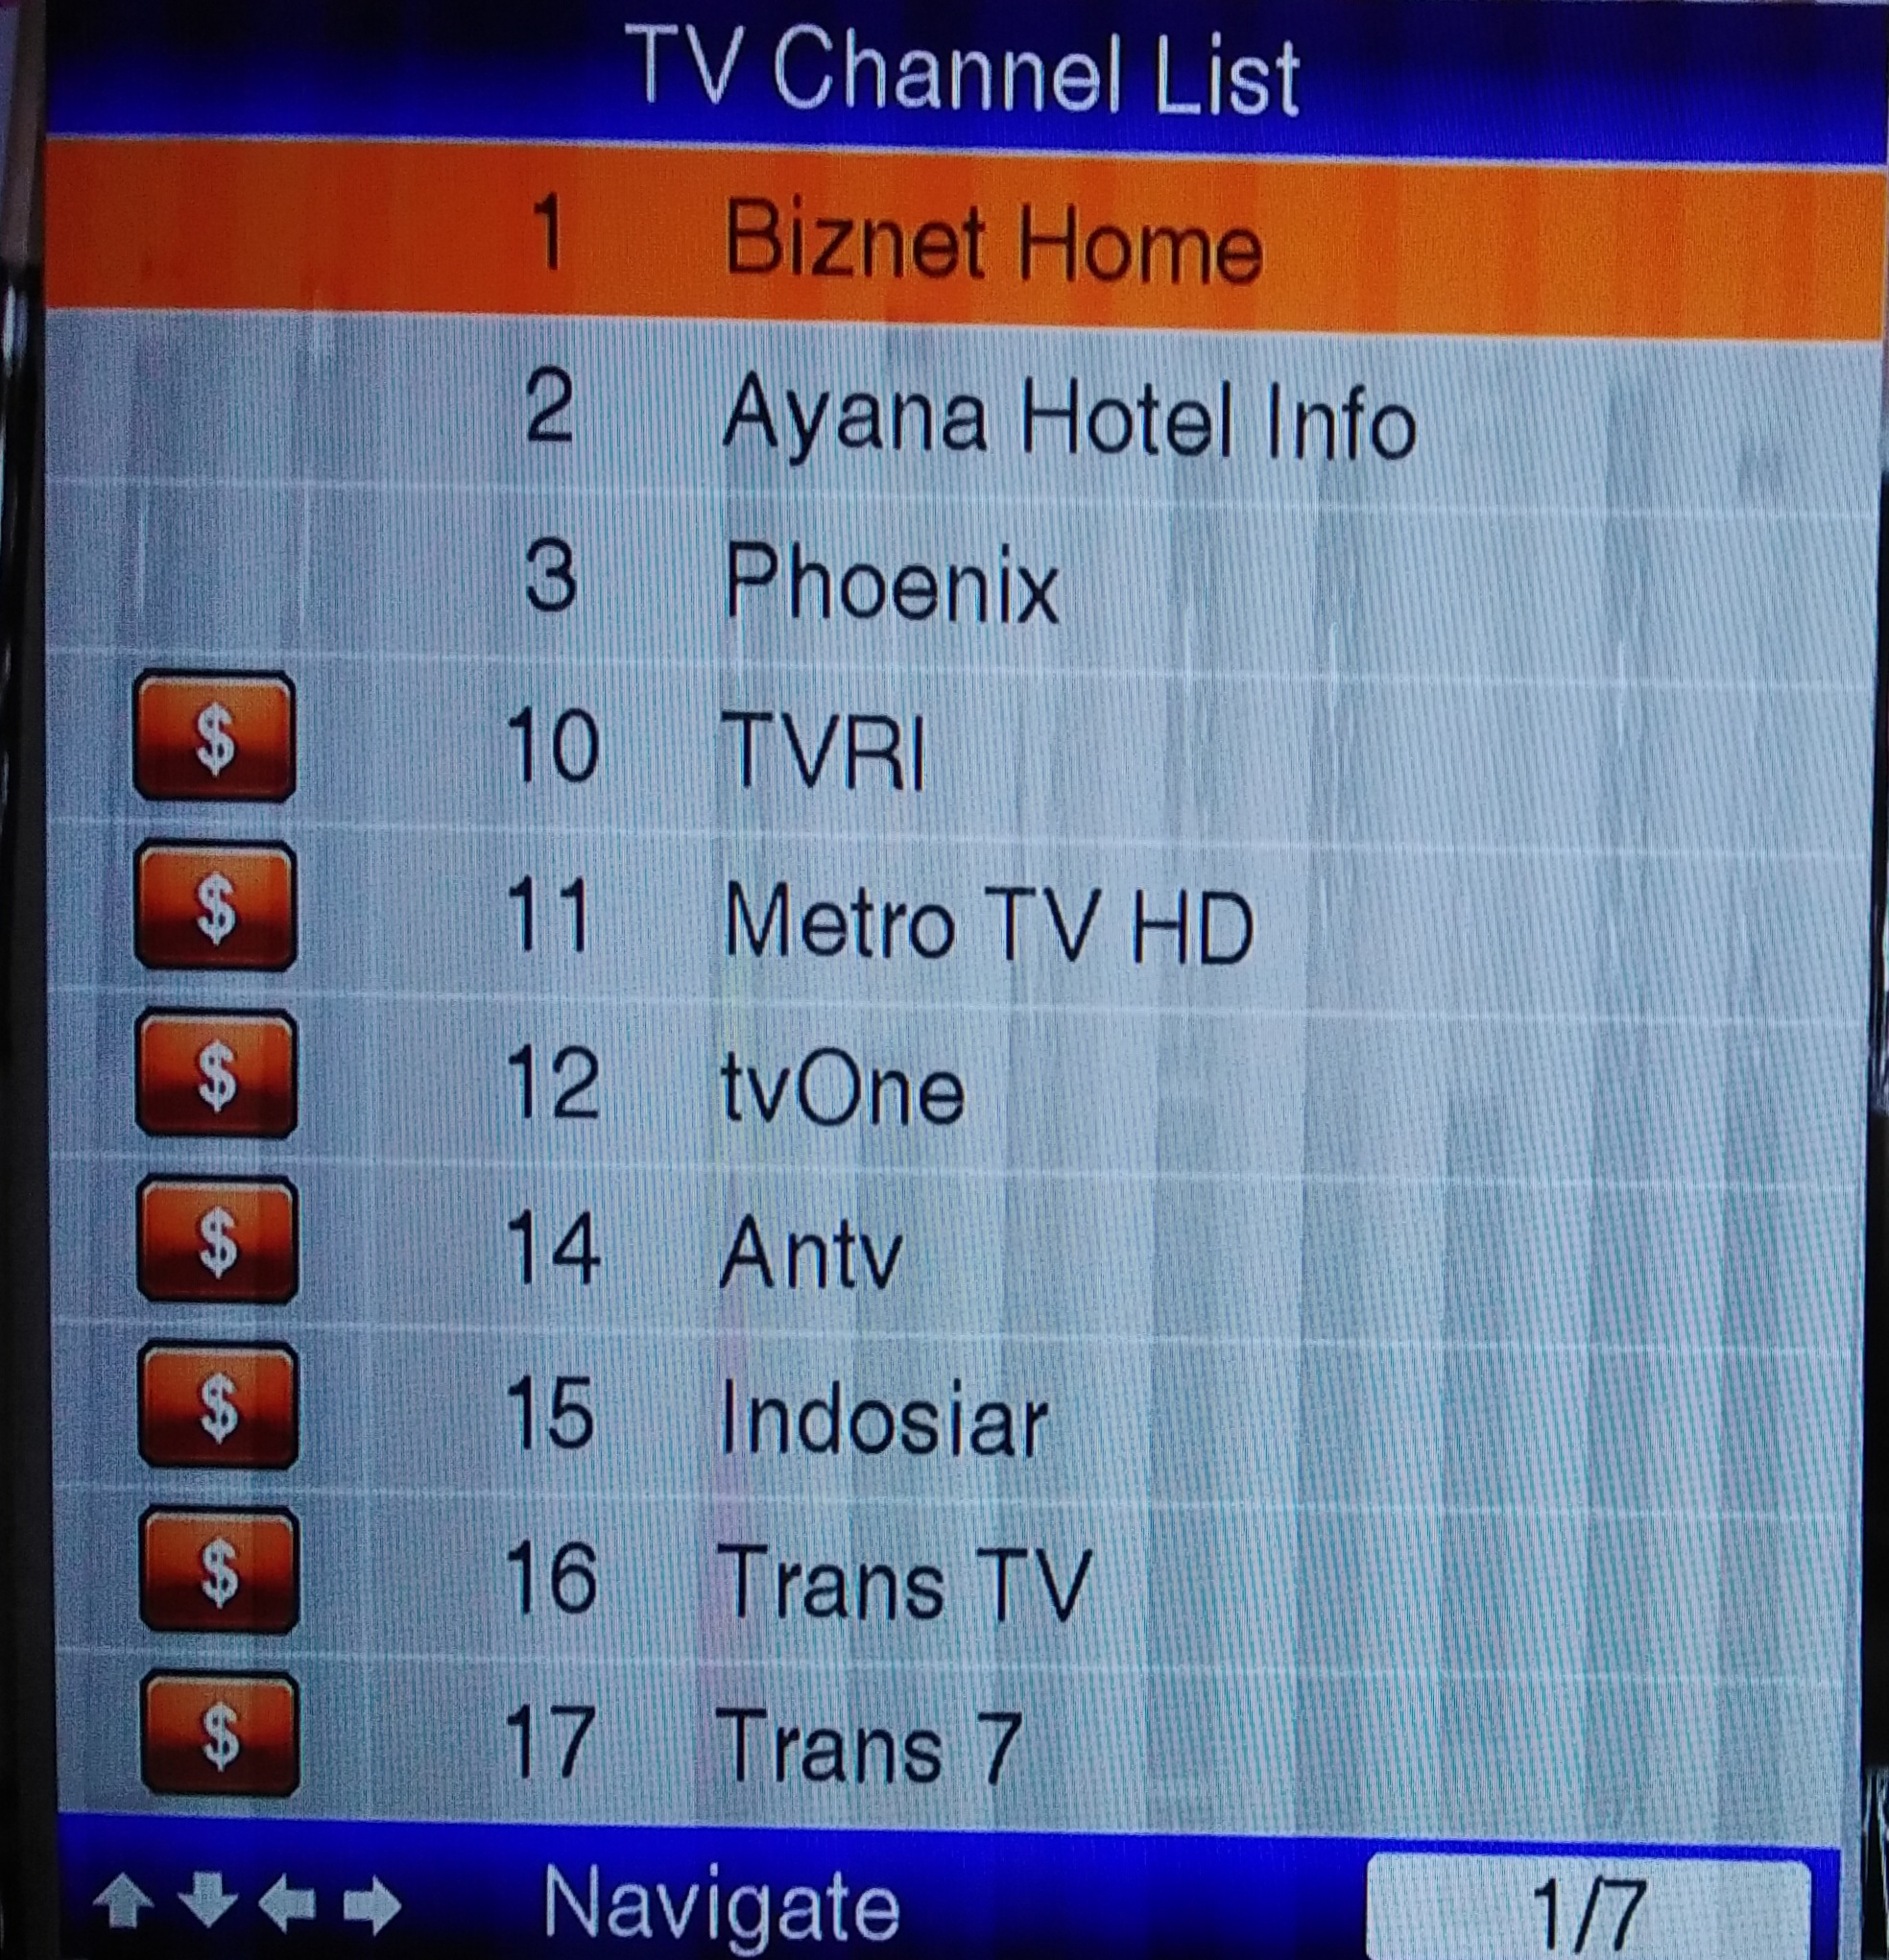 AYANA TV CHANNEL1